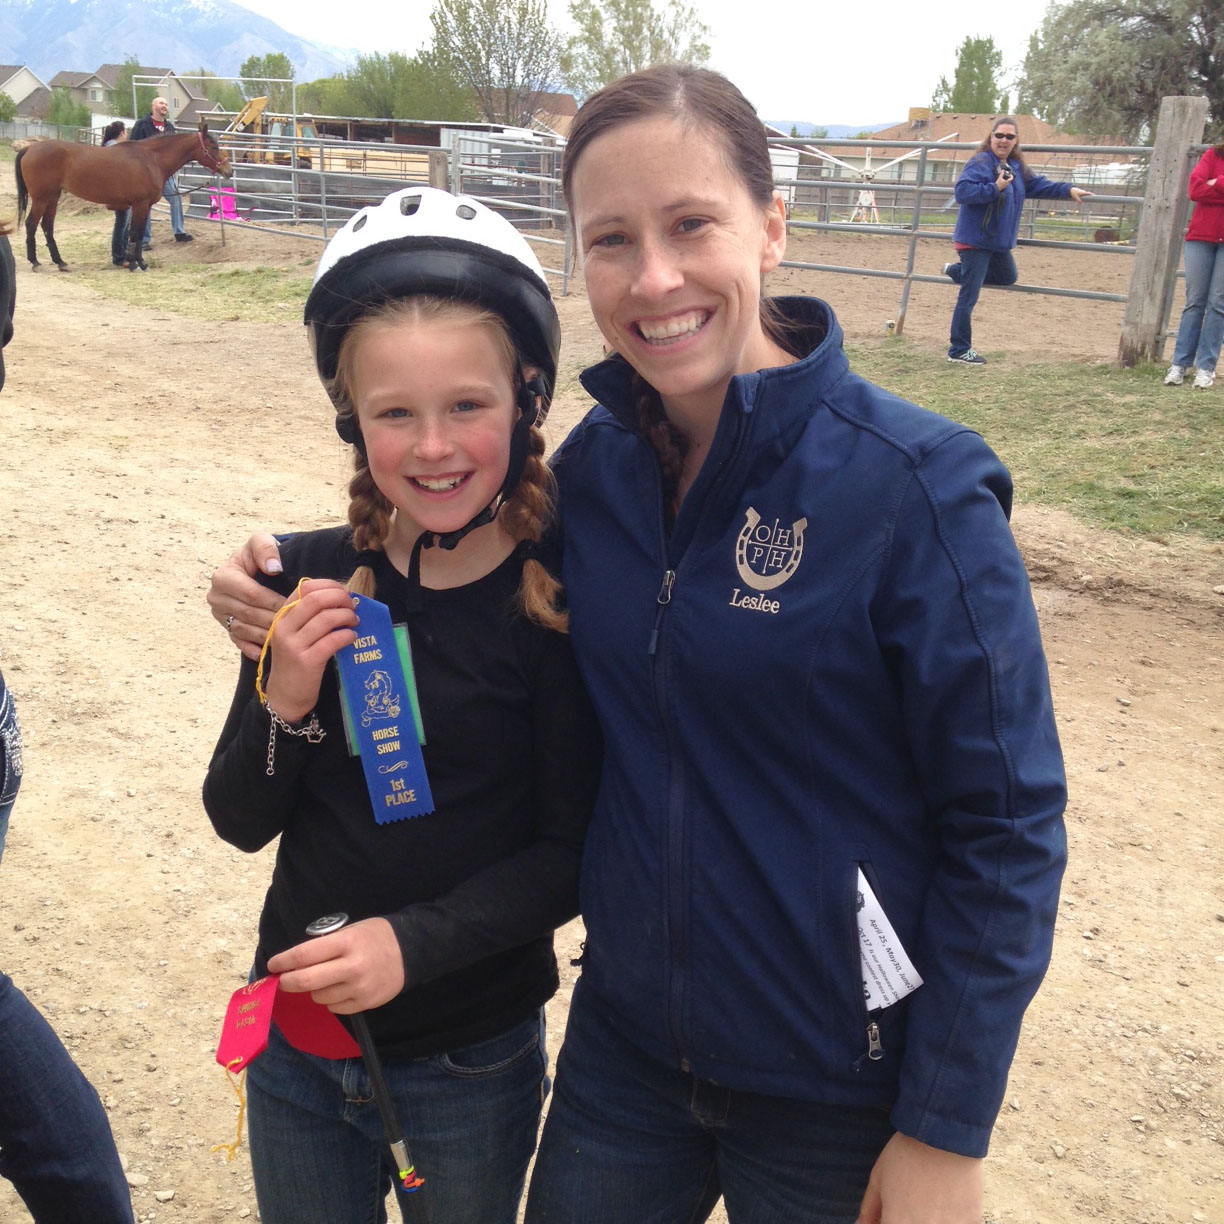 First place at her first horse show!